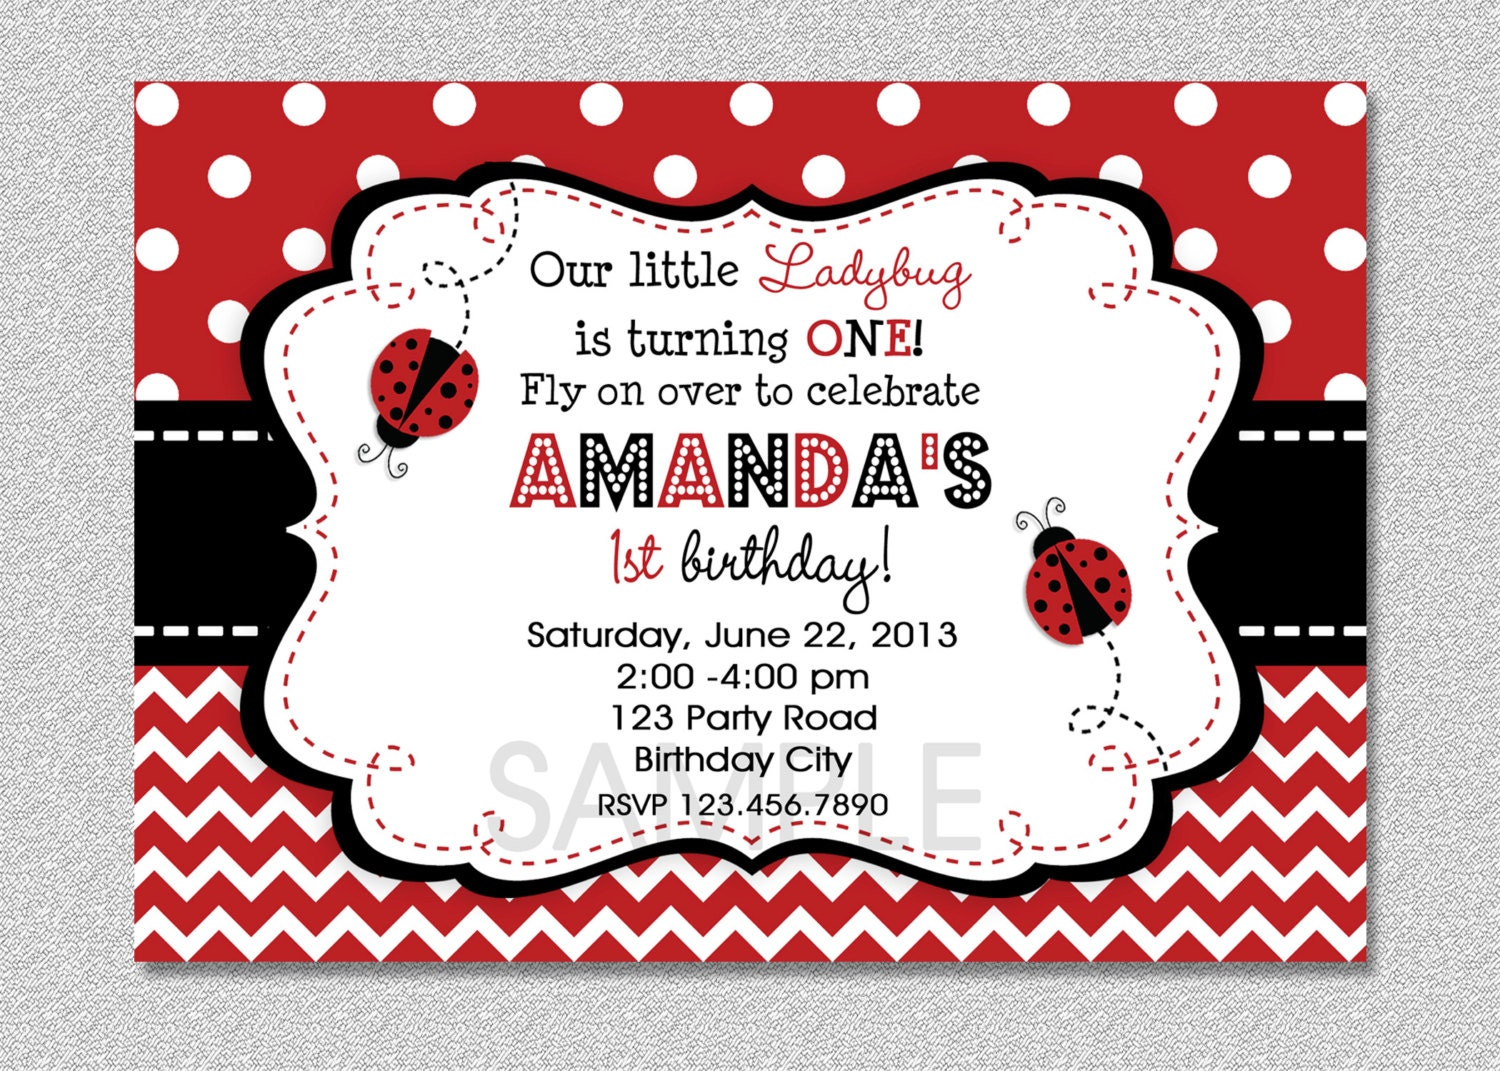 Ladybug birthday invitation red ladybug invitation ladybug ampliar solutioingenieria Choice Image